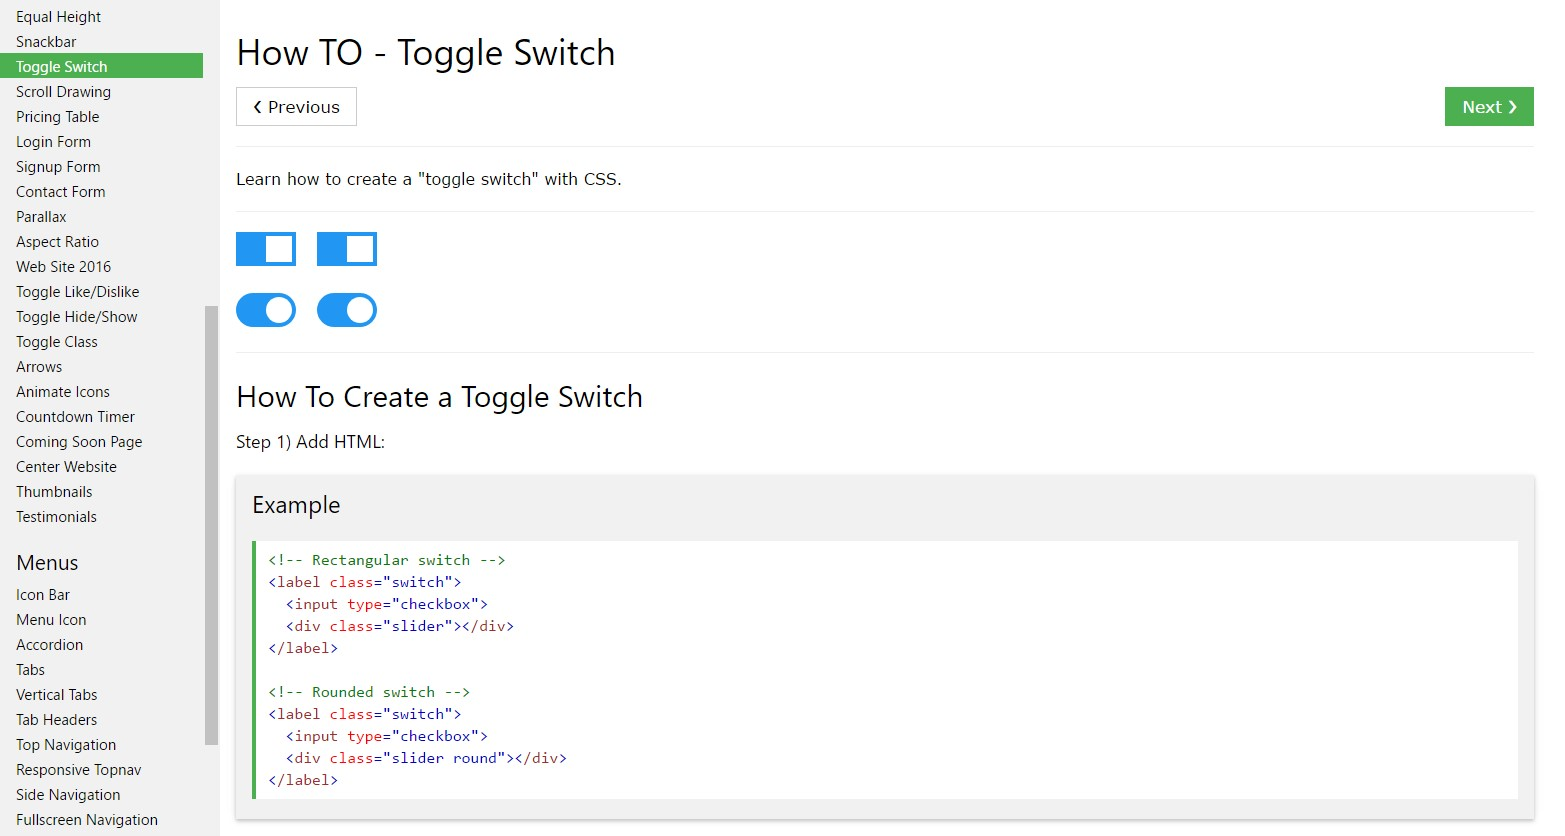 The best way to  develop Toggle Switch